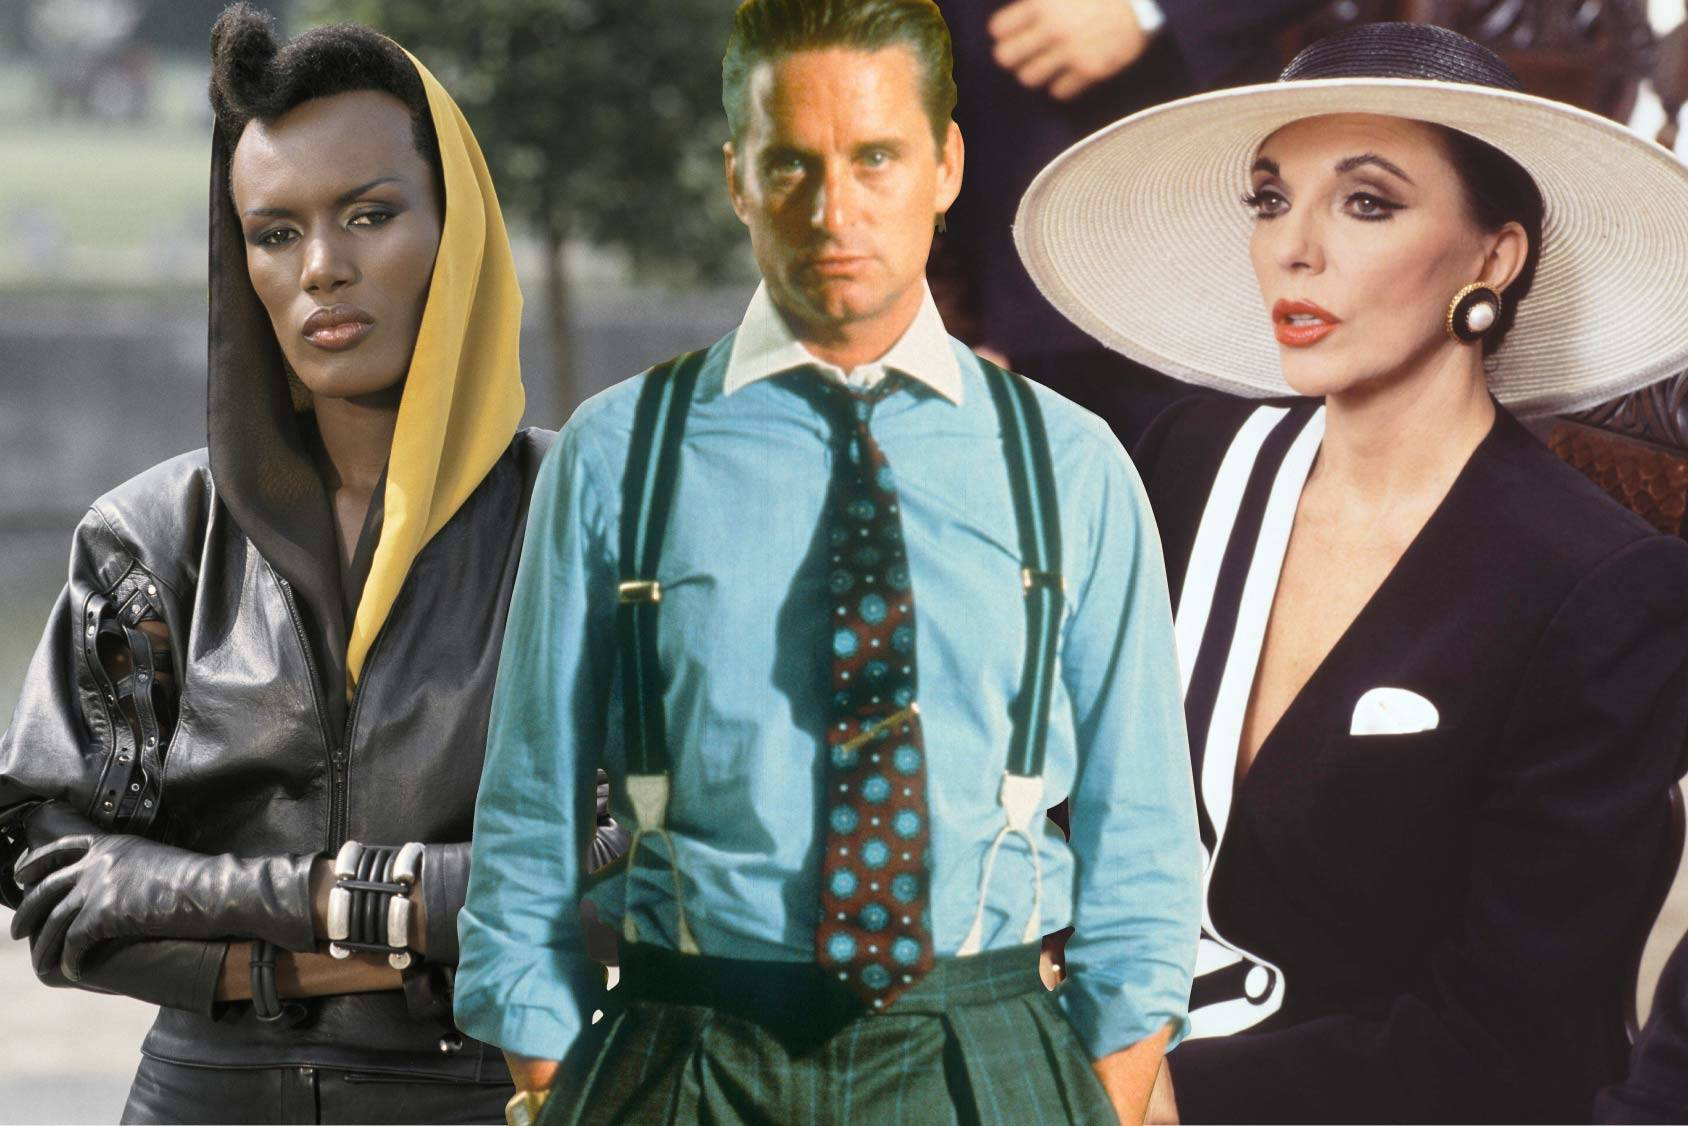 Well dressed villains May Day, Gordon Gekko and Alexis Colby, All Over Press.